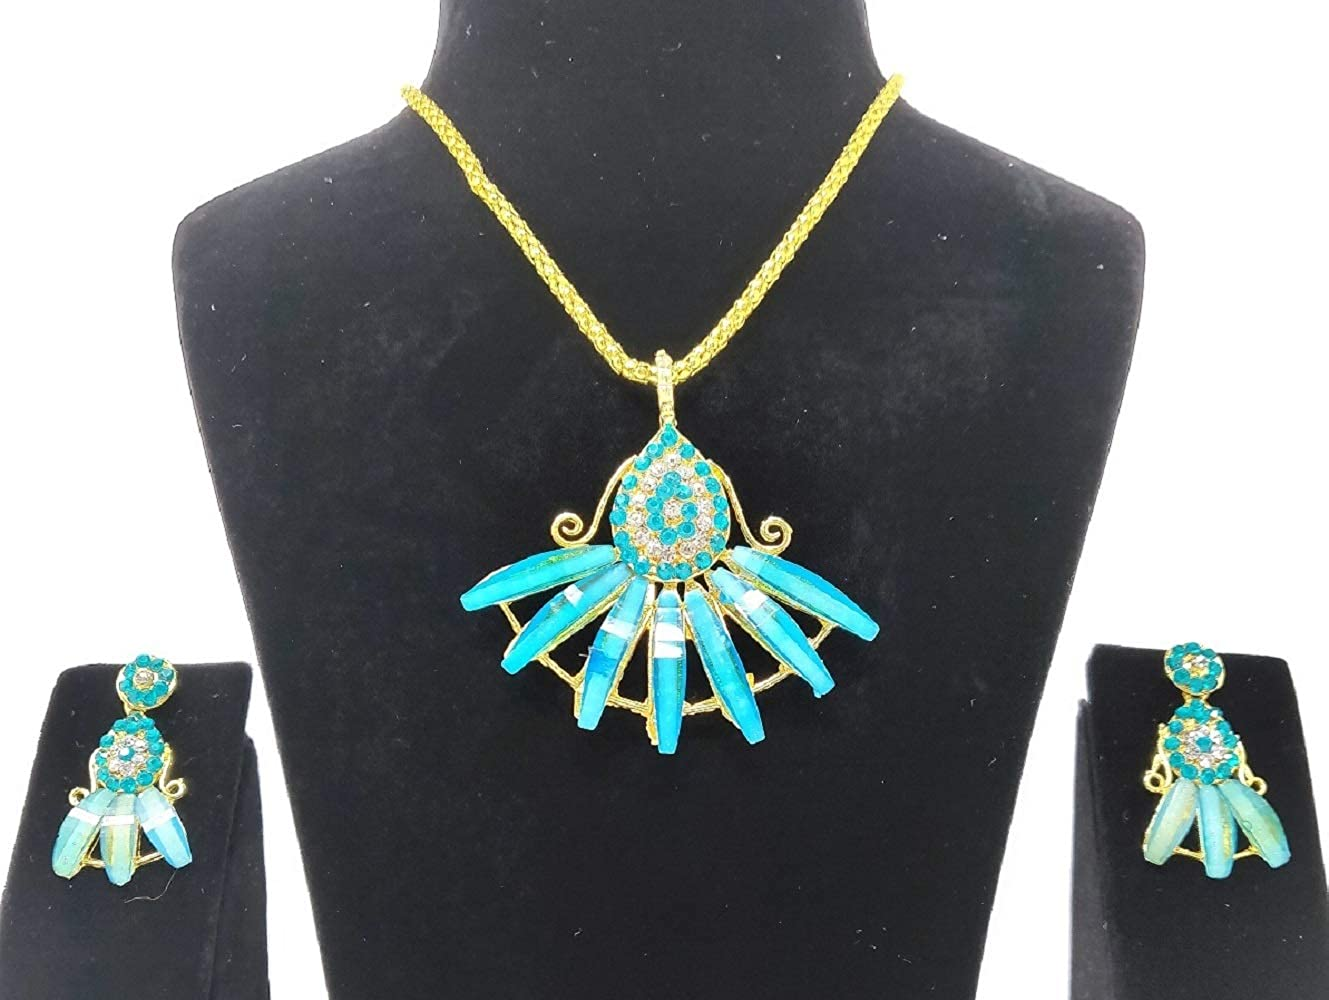 b19ad74ac510c7 Buy Swag Fashion s Stylish Fancy Party Wear Necklace Set with Earrings for  Girls and Women (Blue) Online at Low Prices in India